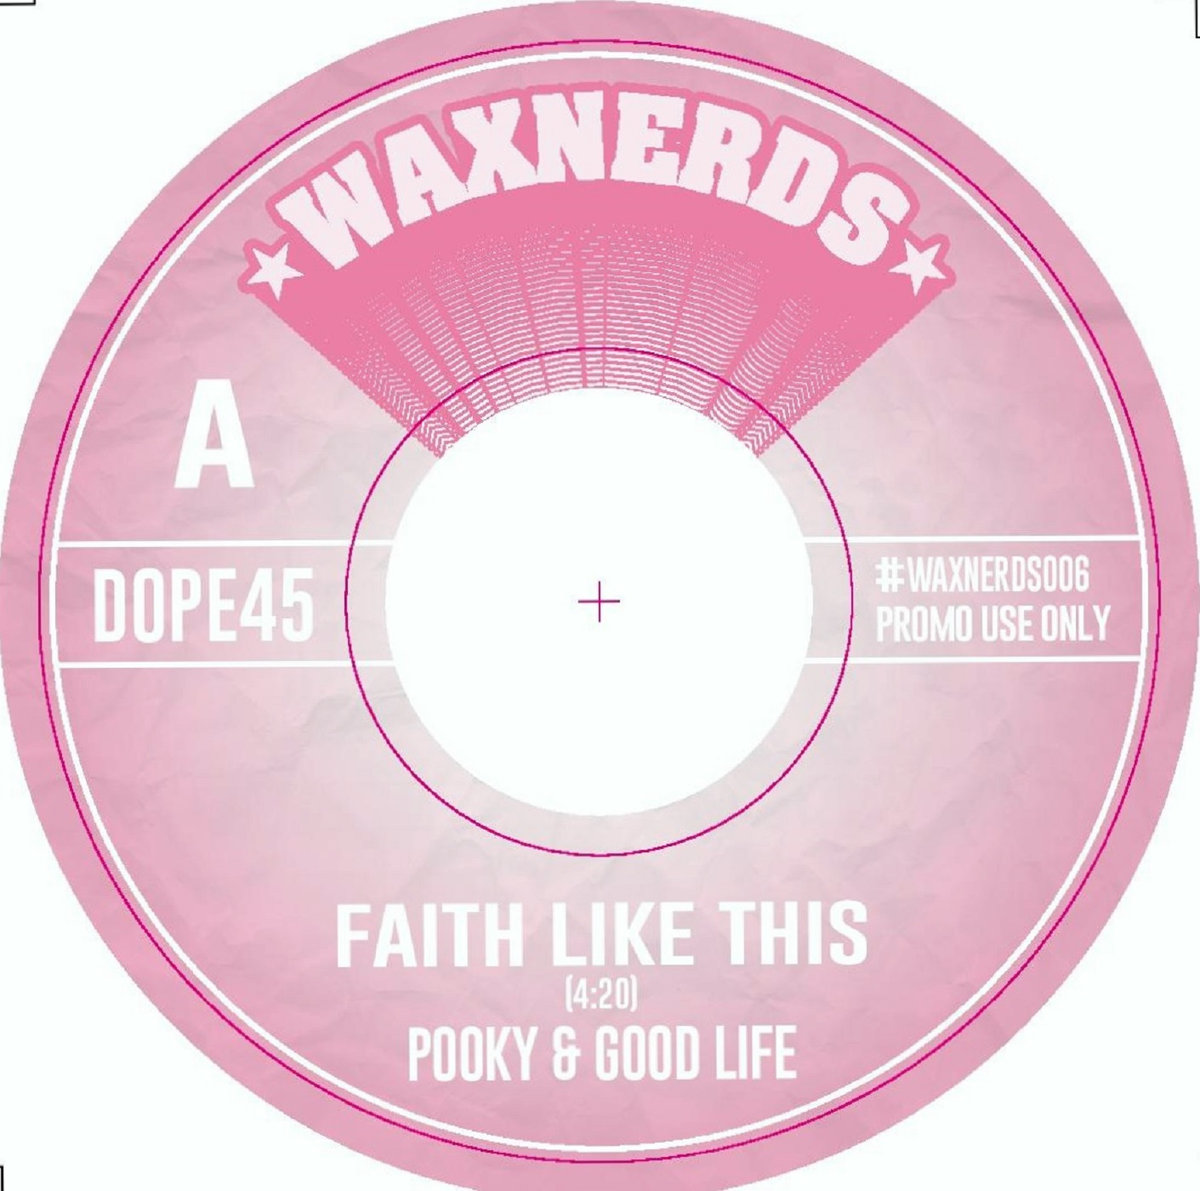 Song of the Day: Pooky & Good Life Faith Like This